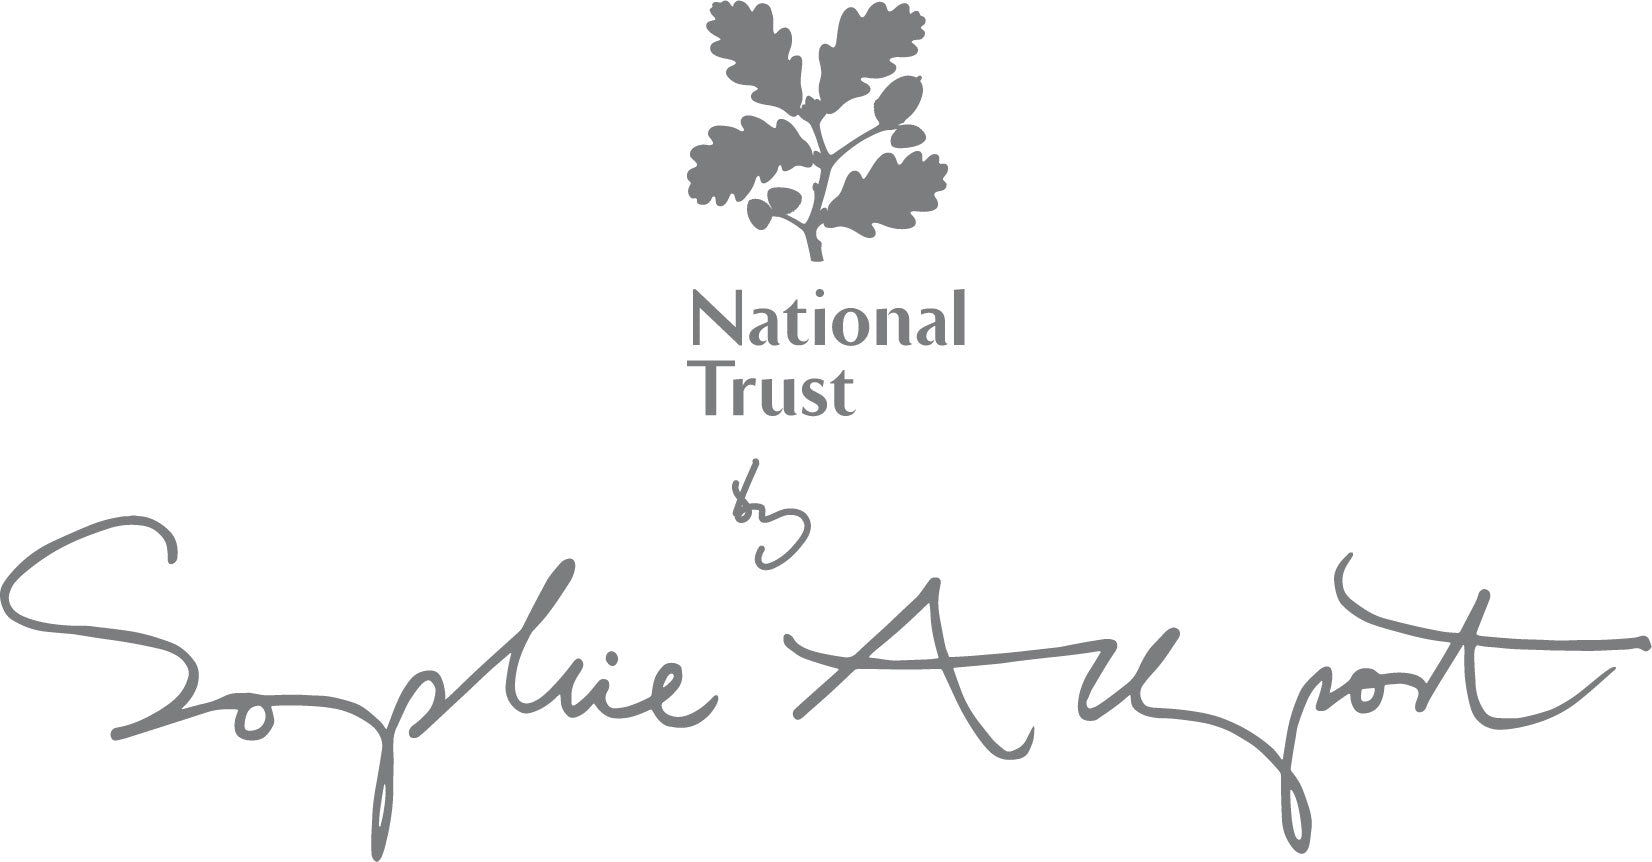 National Trust by Sophie Allport Logo